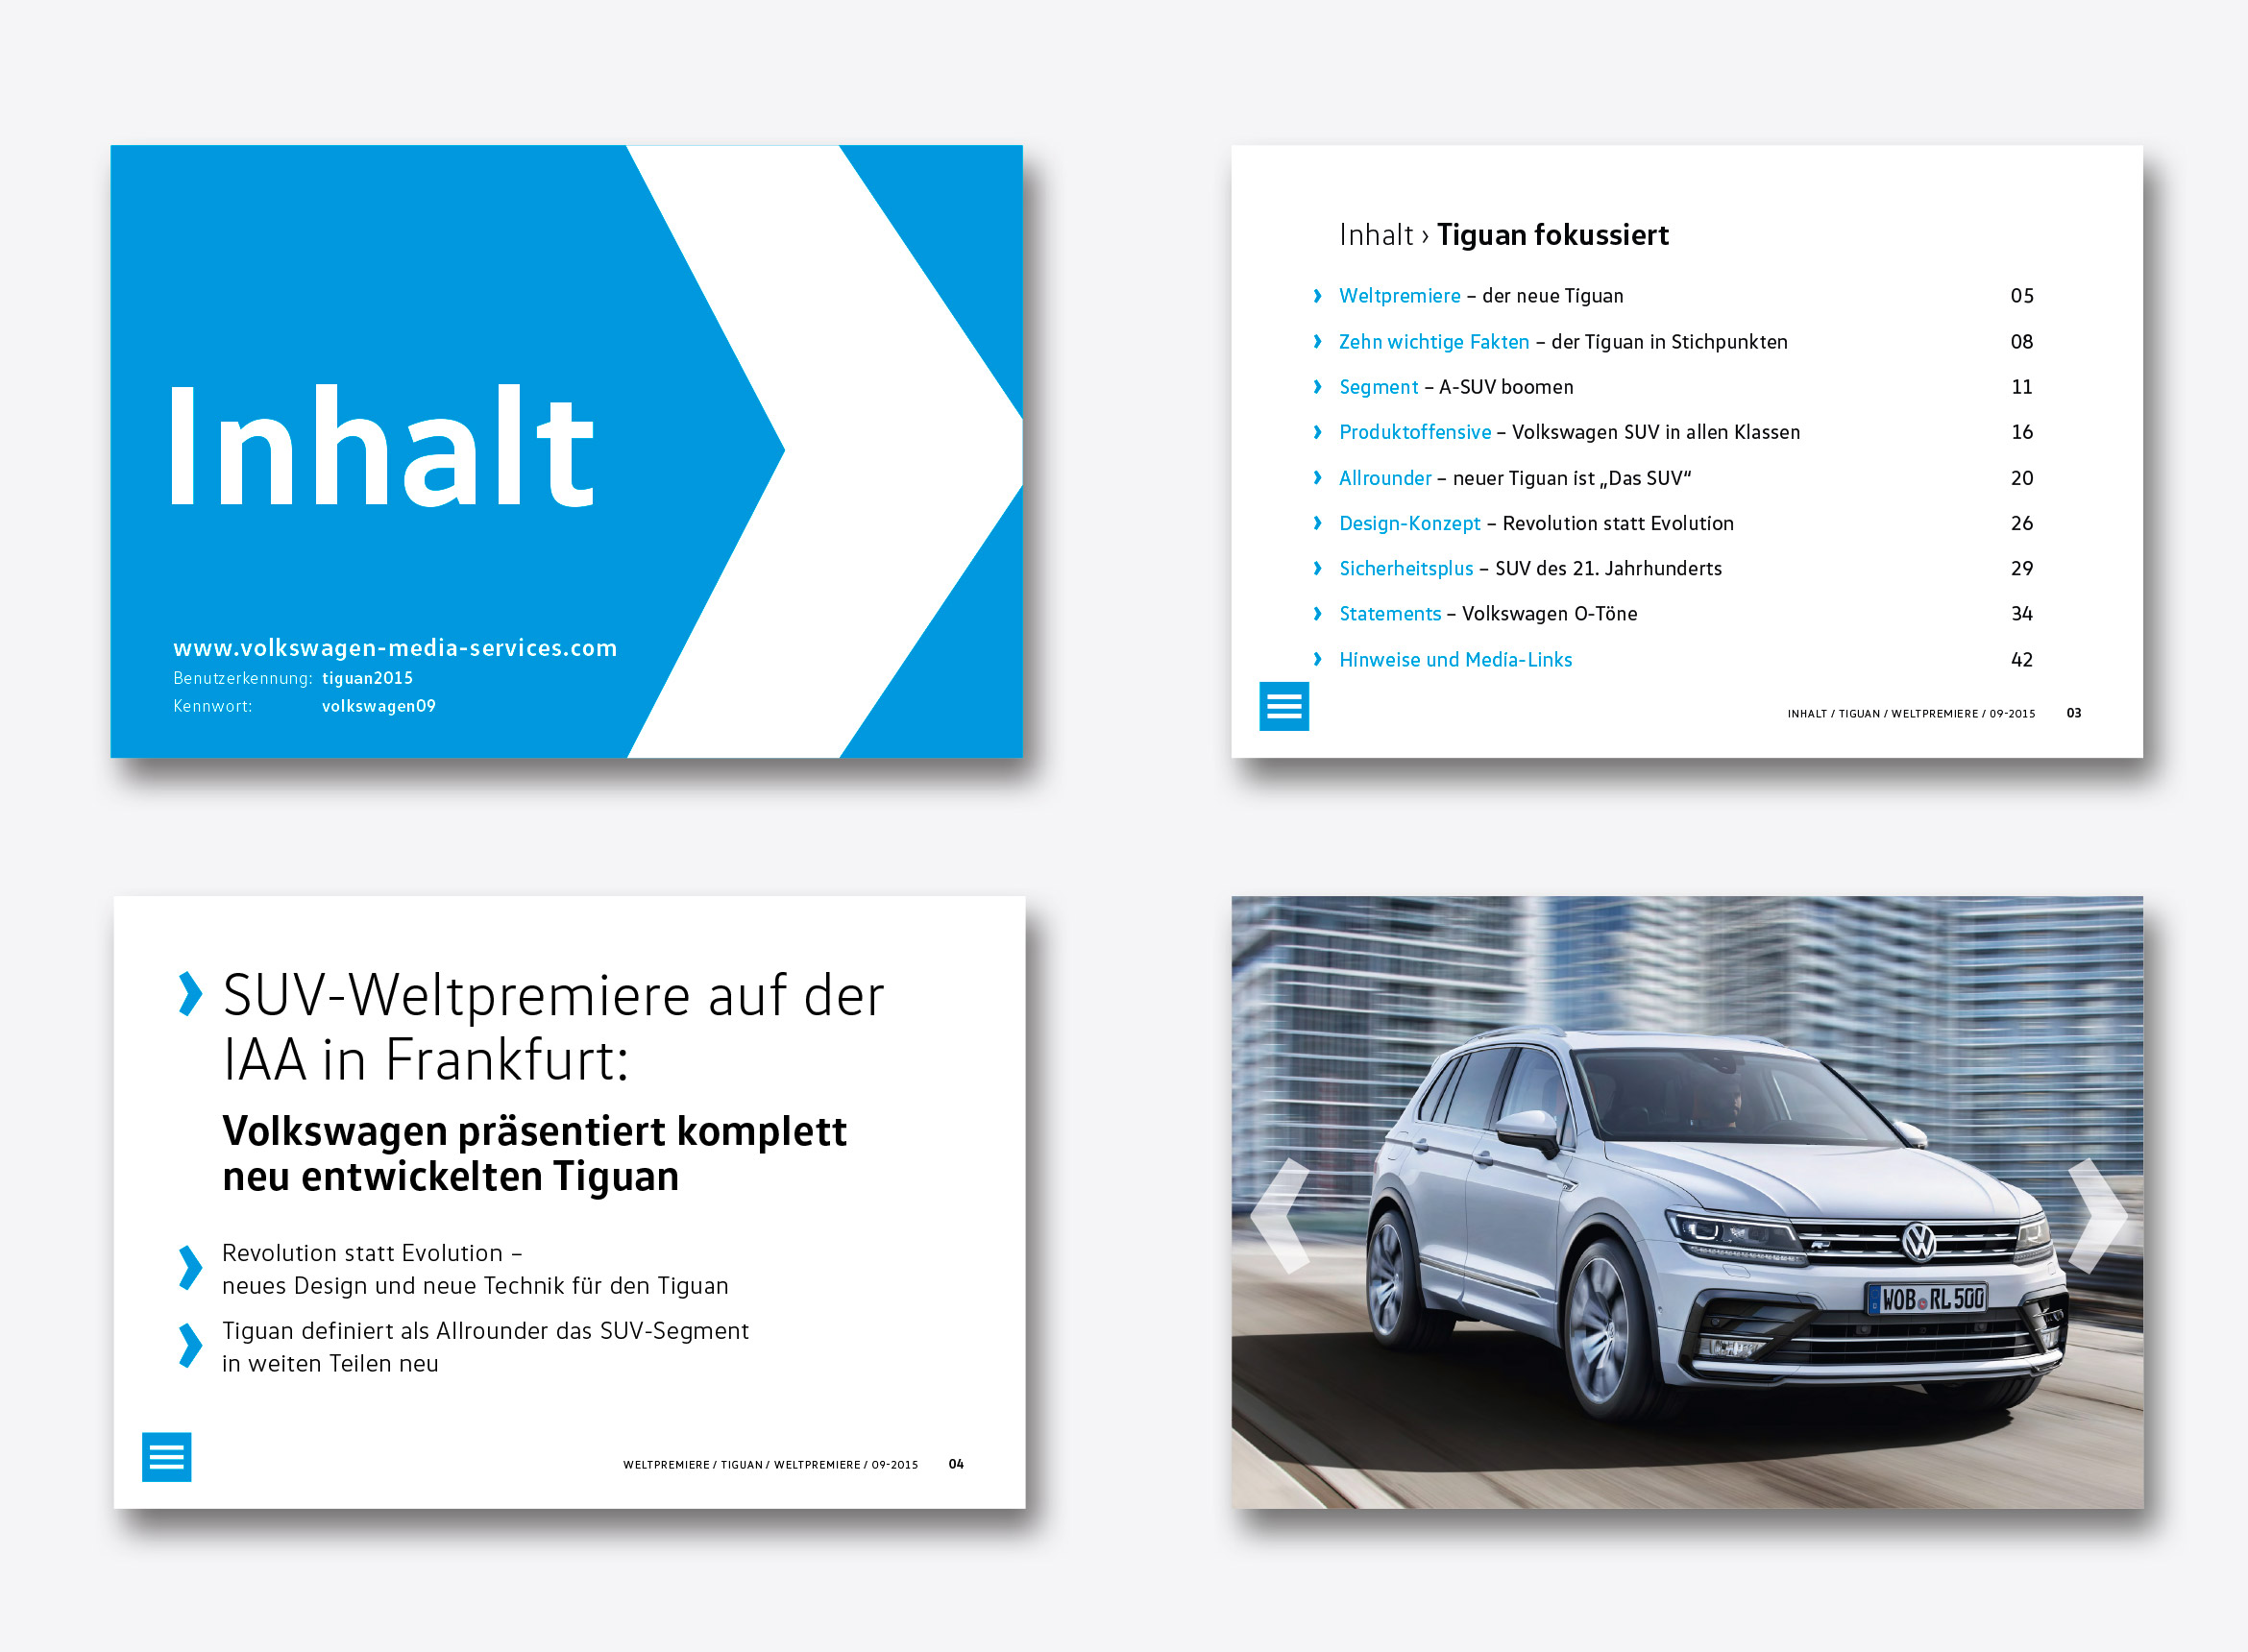 new generation pr-tools für Volkswagen